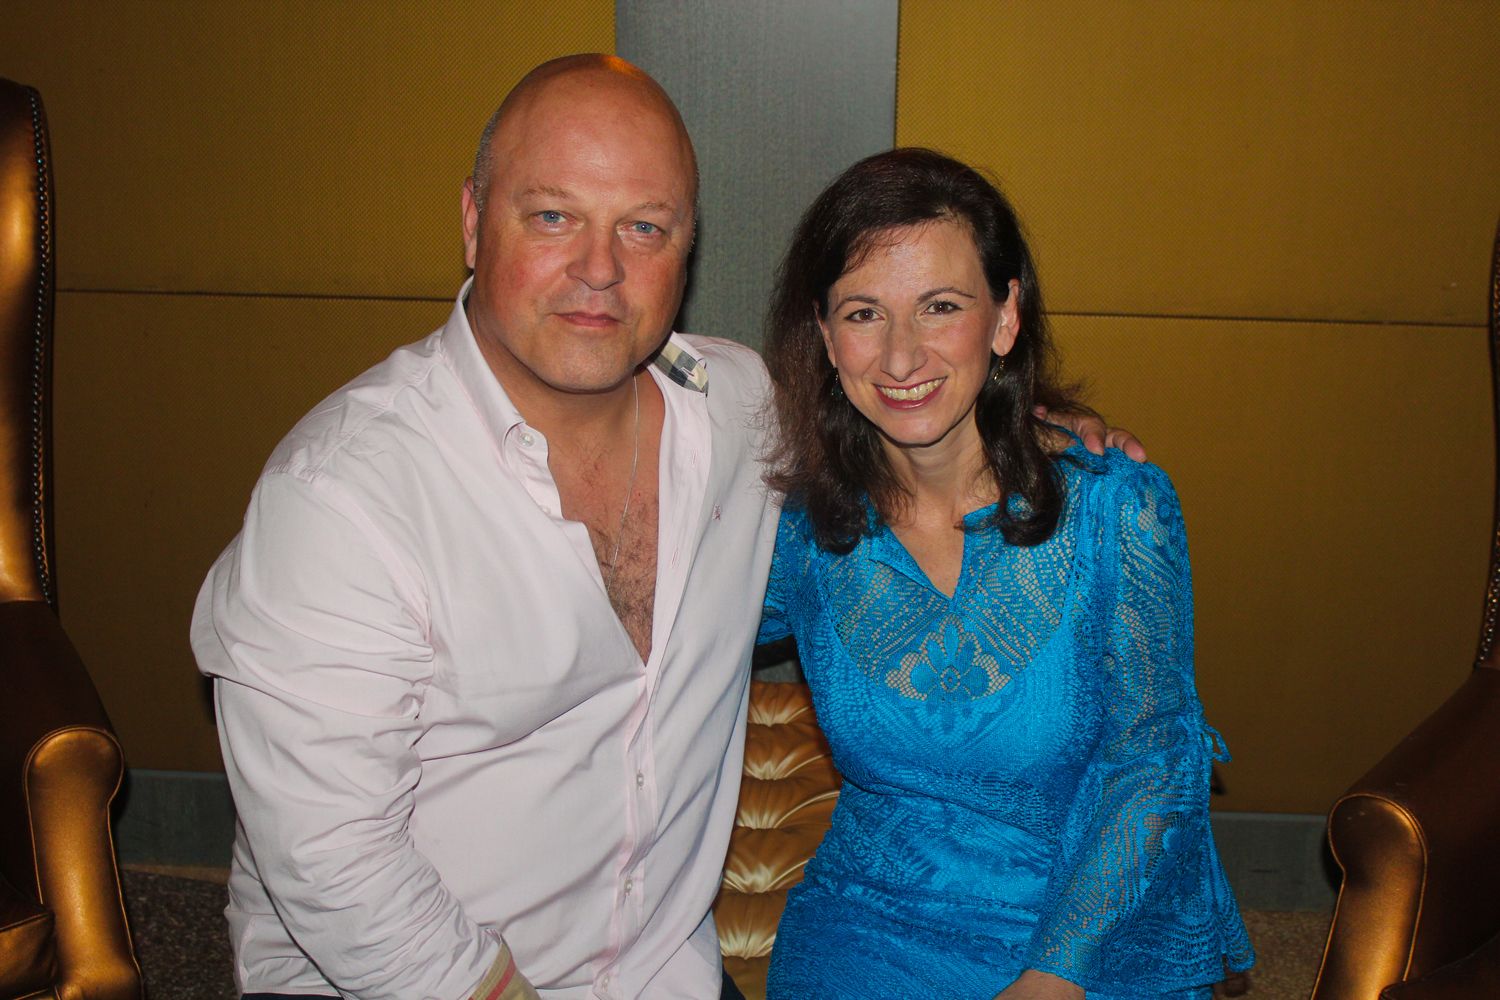 Actor Michael Chiklis with D.J. Niko